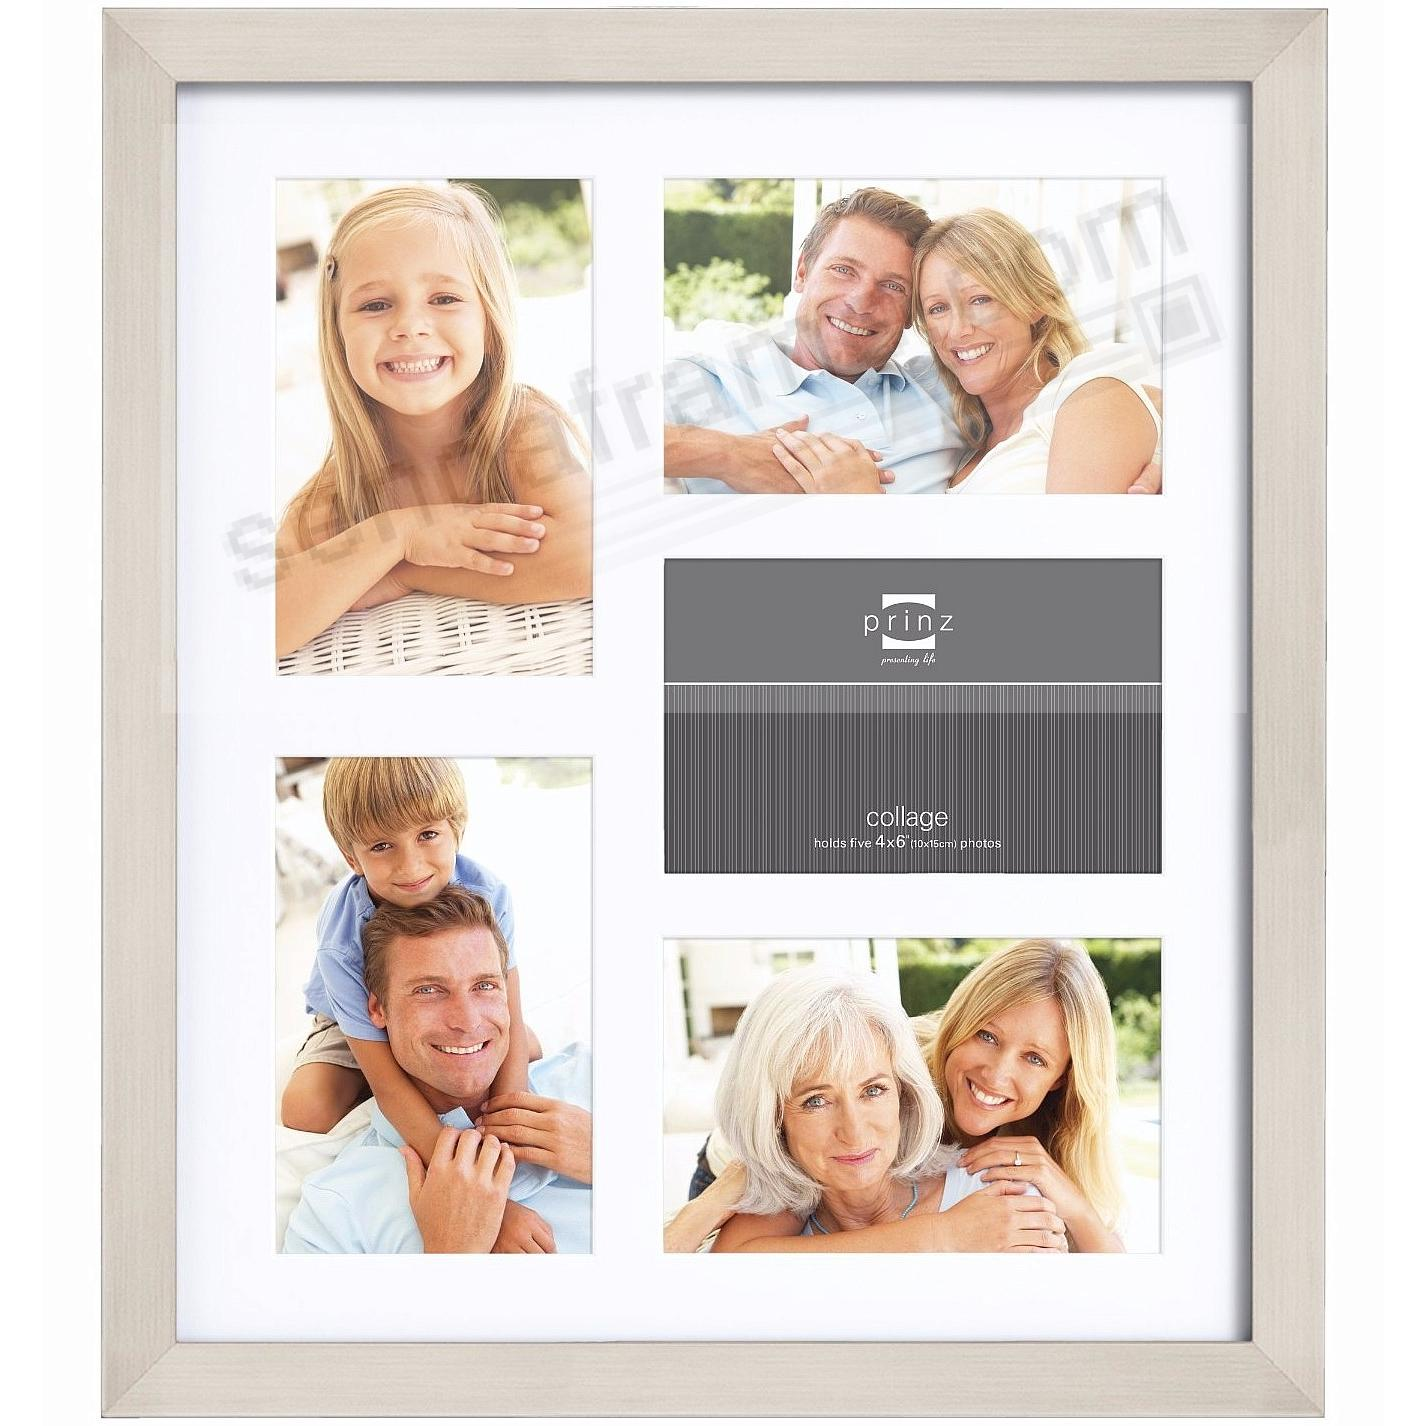 Matted Nickel Finish collage frame for 5 - 4x6 prints by Prinz®